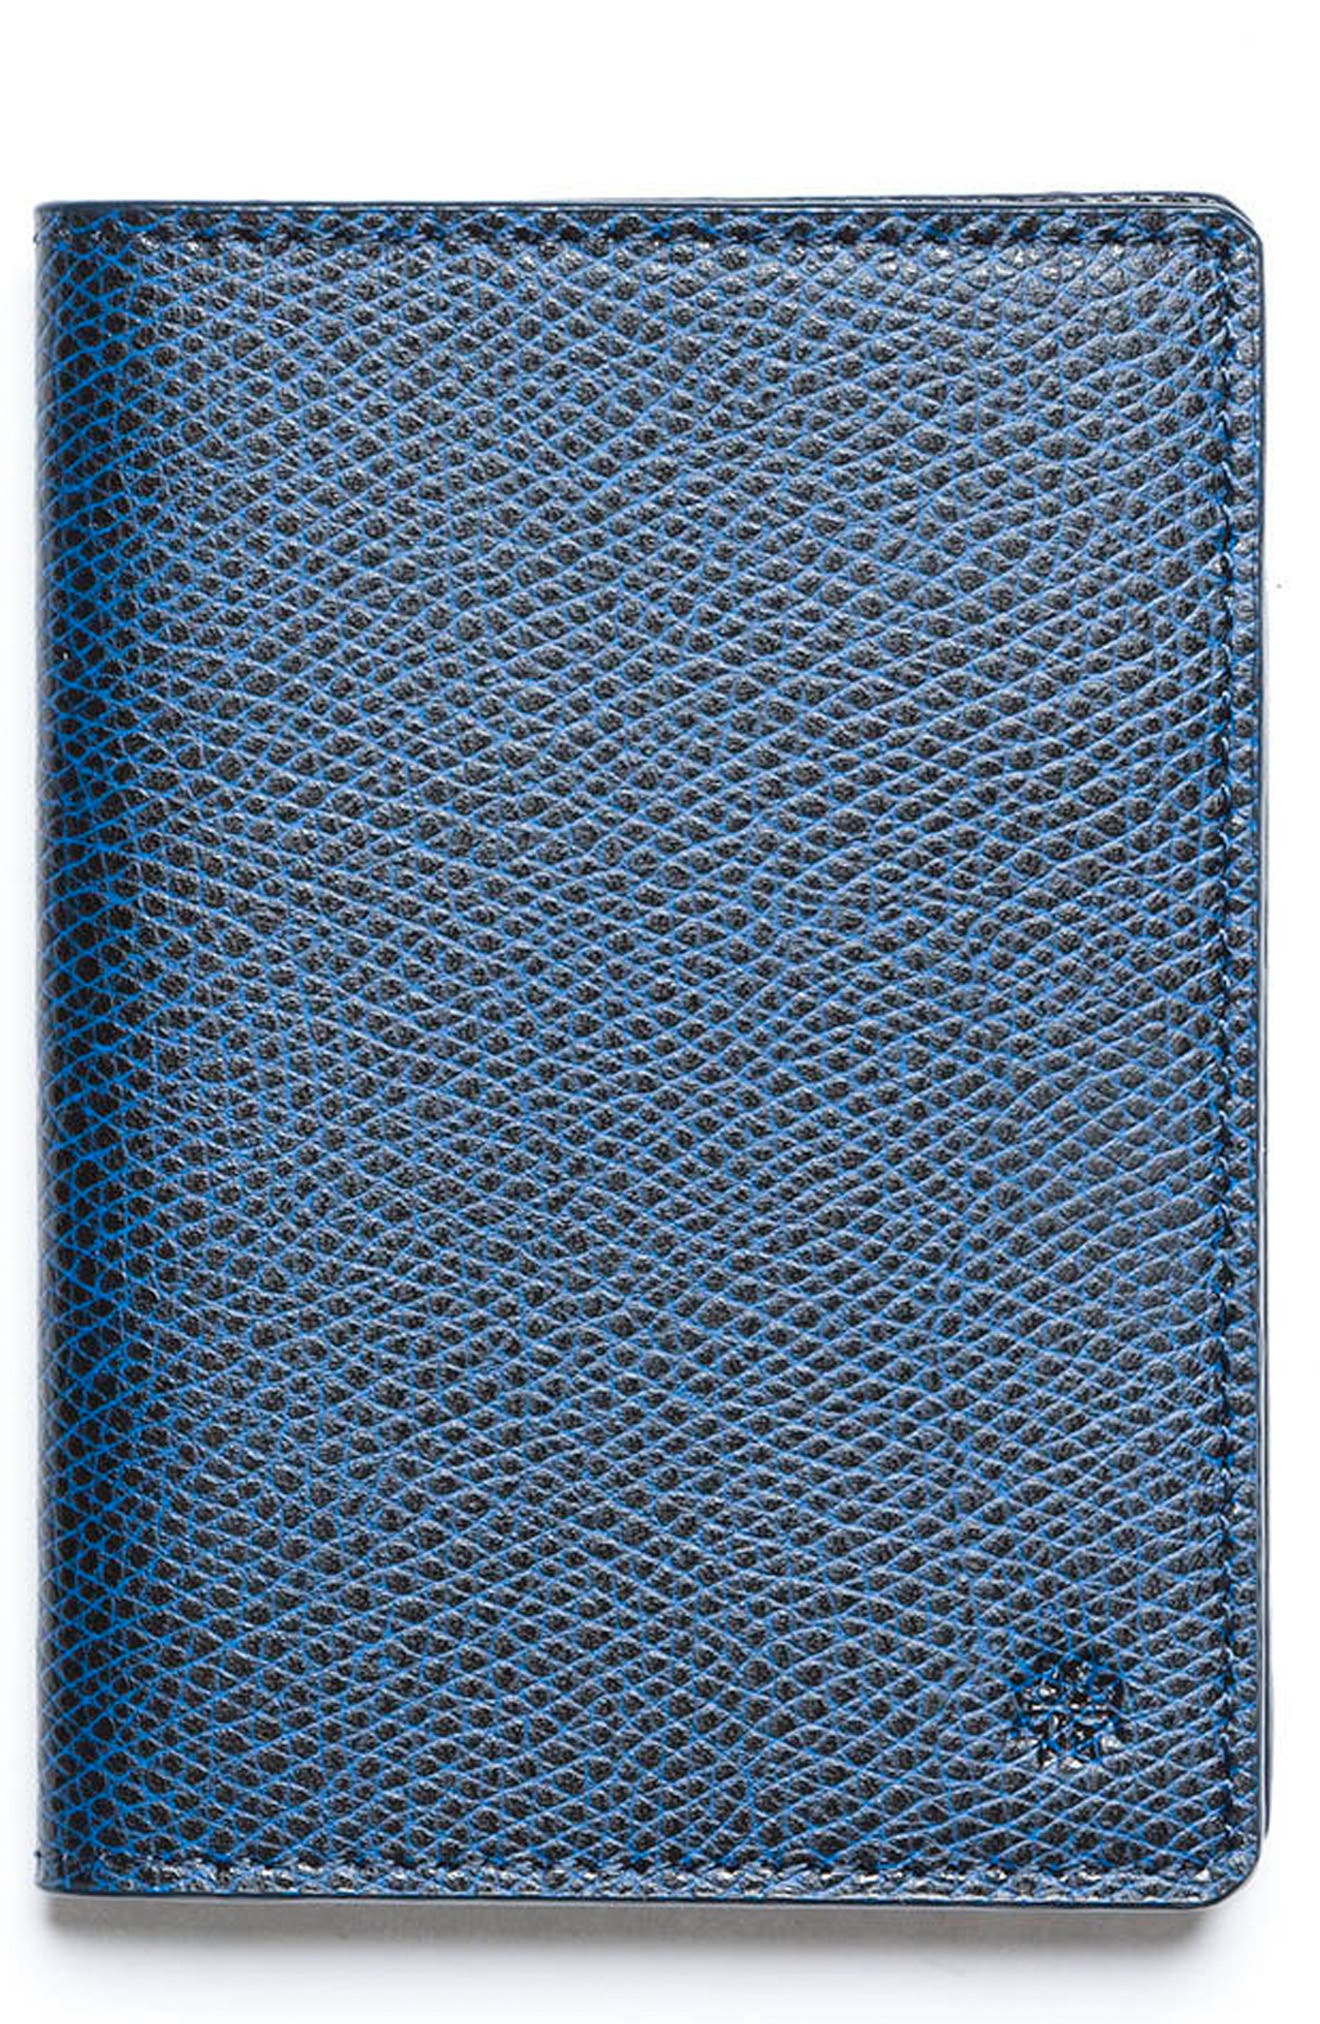 Vertical Leather Wallet,                             Main thumbnail 1, color,                             Navy